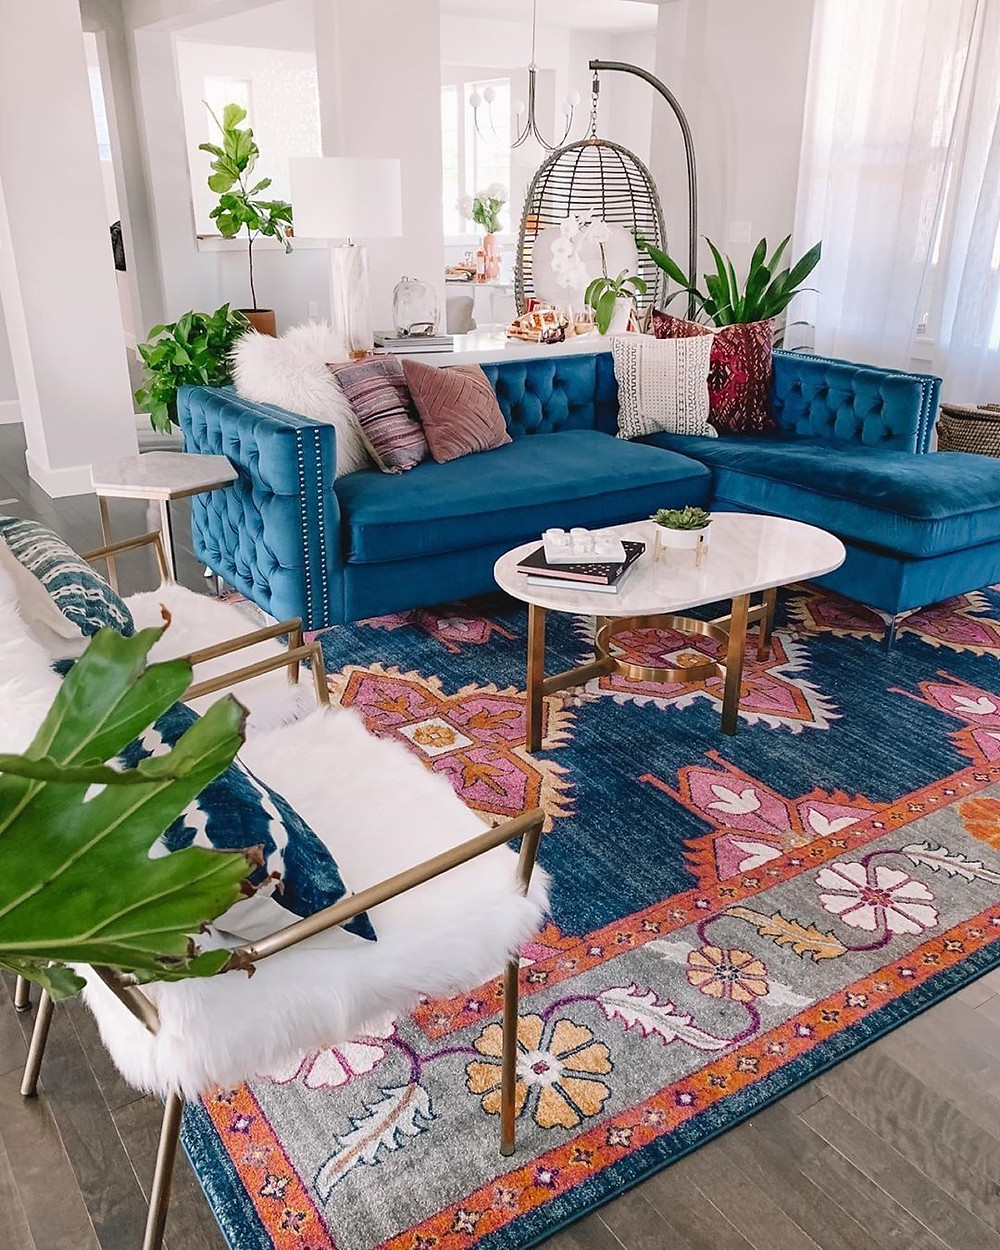 stunning teal sofa and blue rug in a boho dream living room with a lot of plants